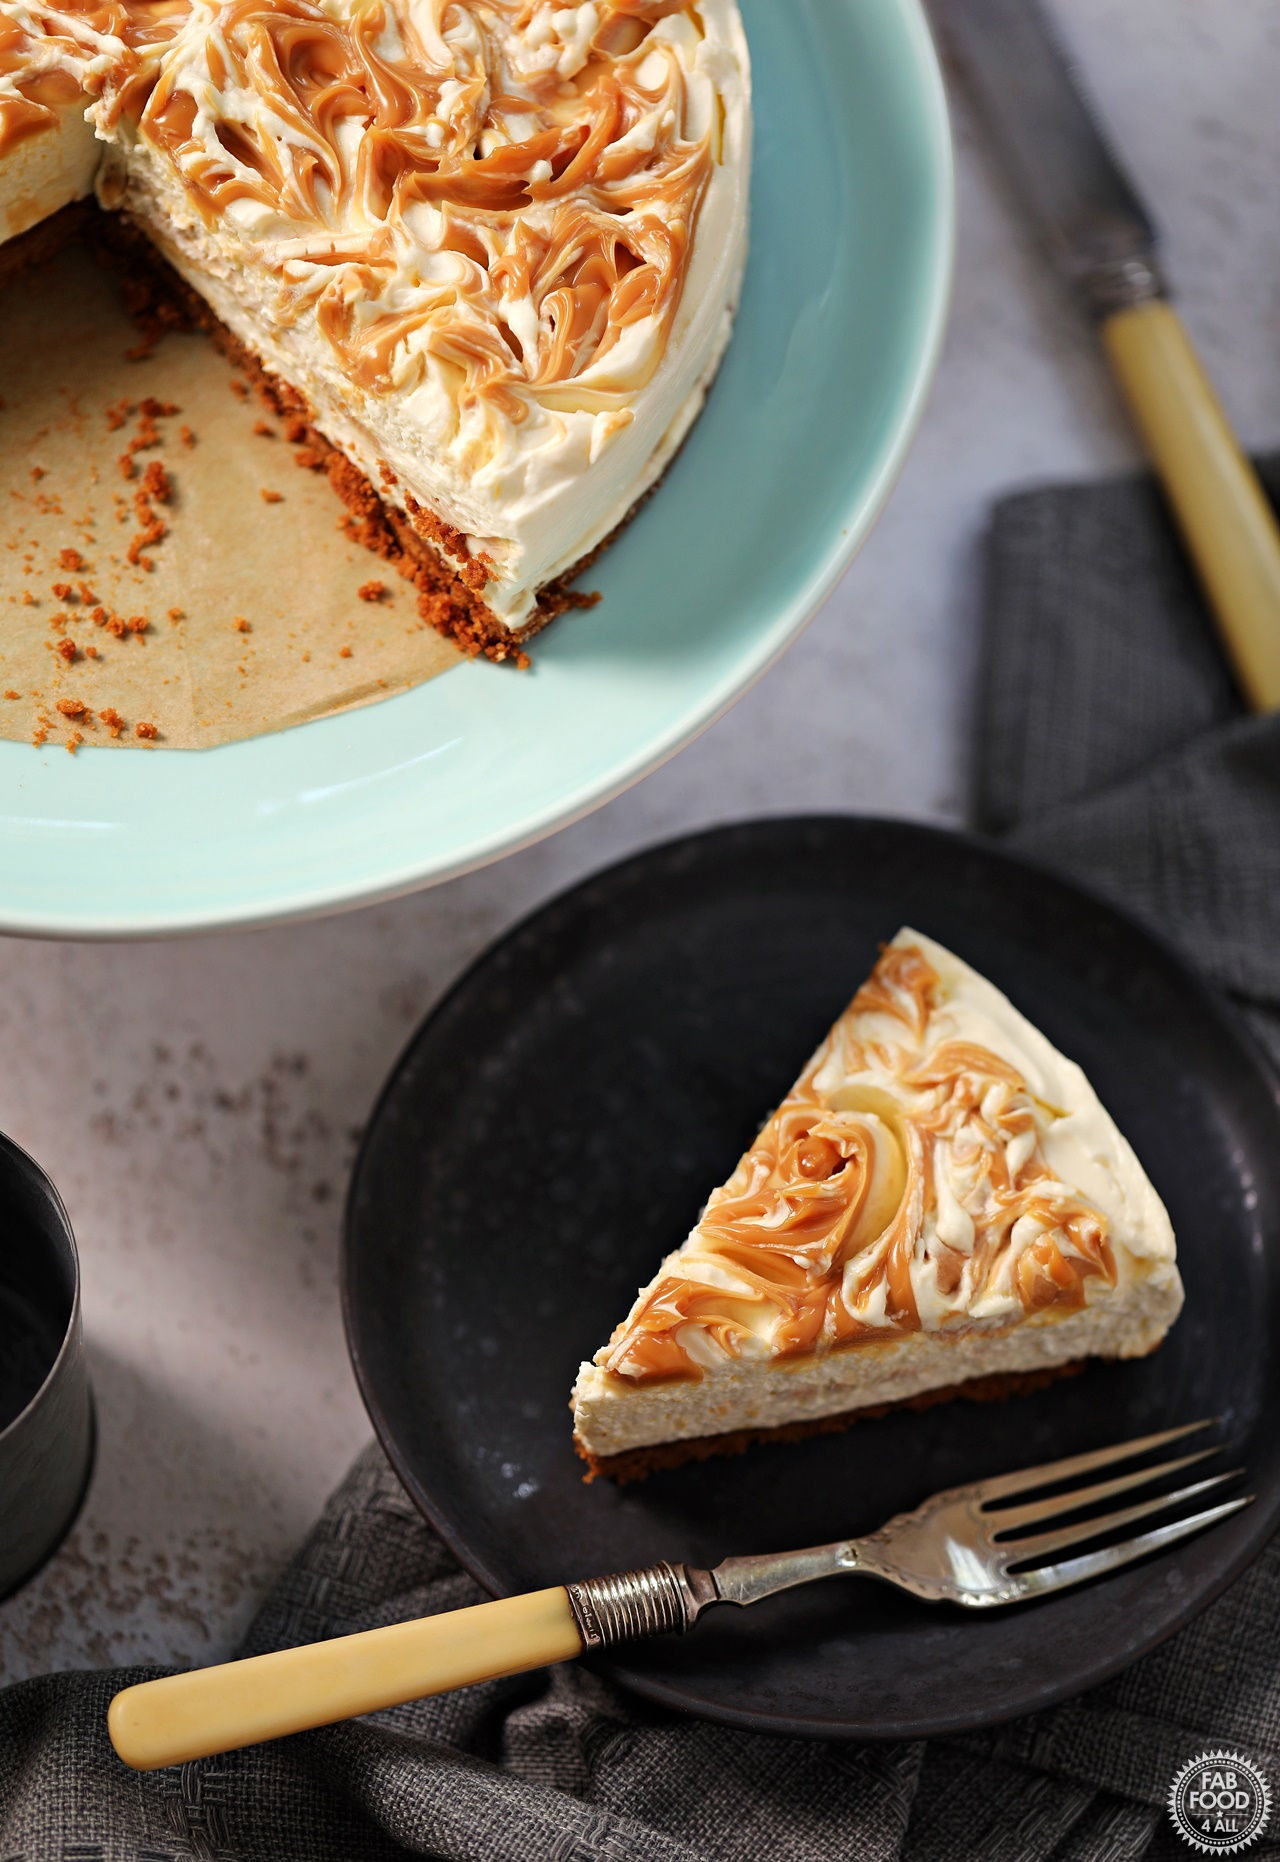 Slice of Easy Salted Caramel Cheesecake on a plate with whole cheesecake in background. (aerial view)